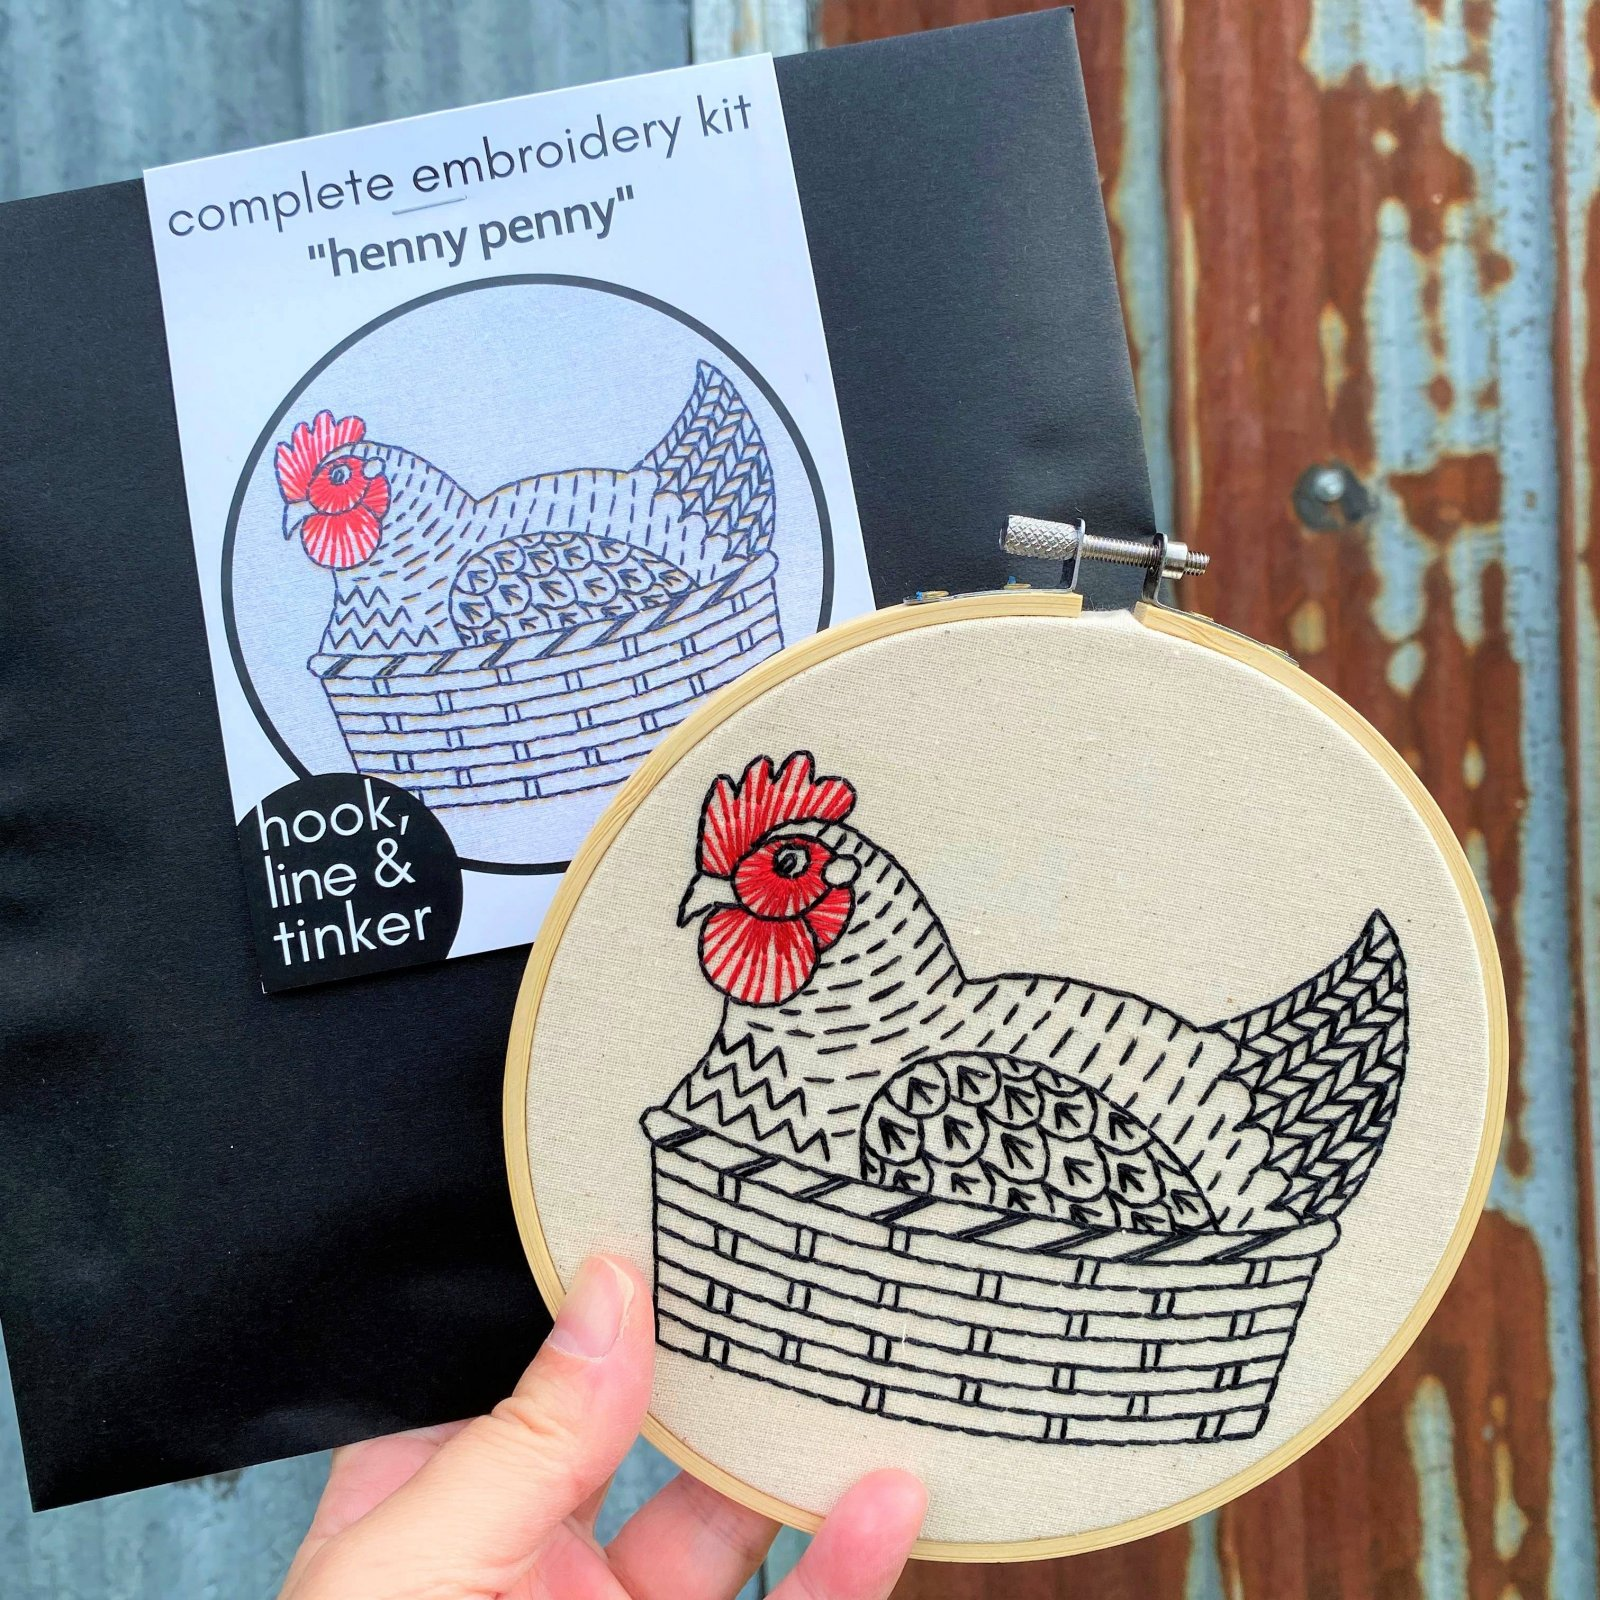 Embroidery Kit - Henny Penny - Hook, Line & Tinker